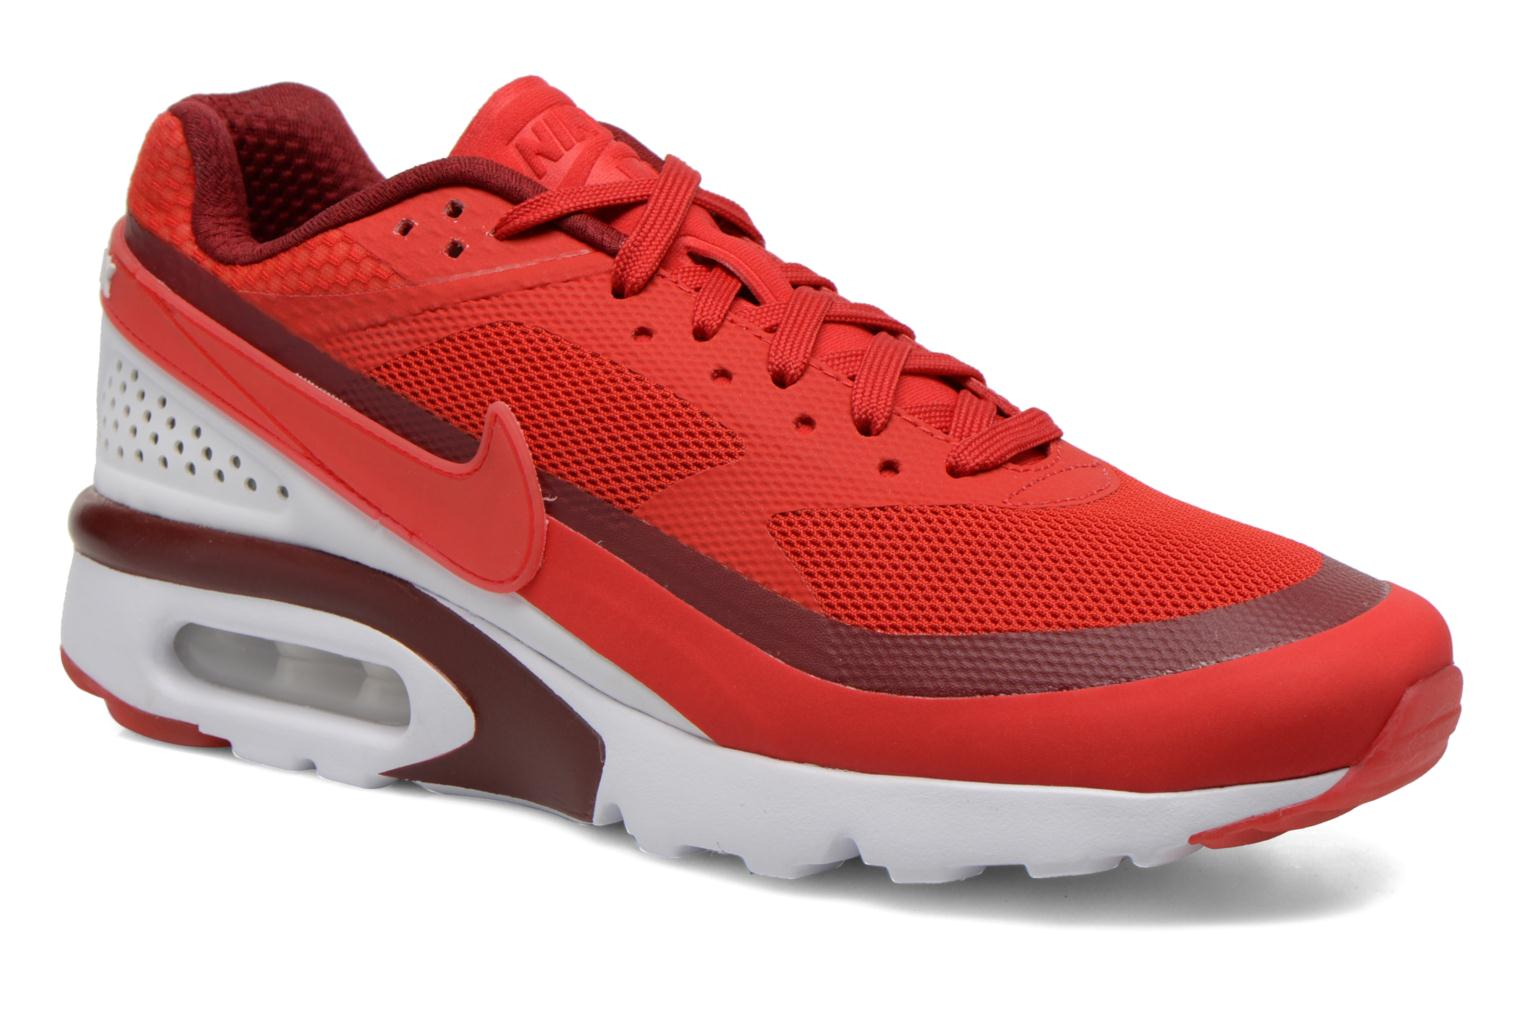 Nike Air Max Bw Ultra Unvrsty RdUnvrsty Rd-Brght Cr